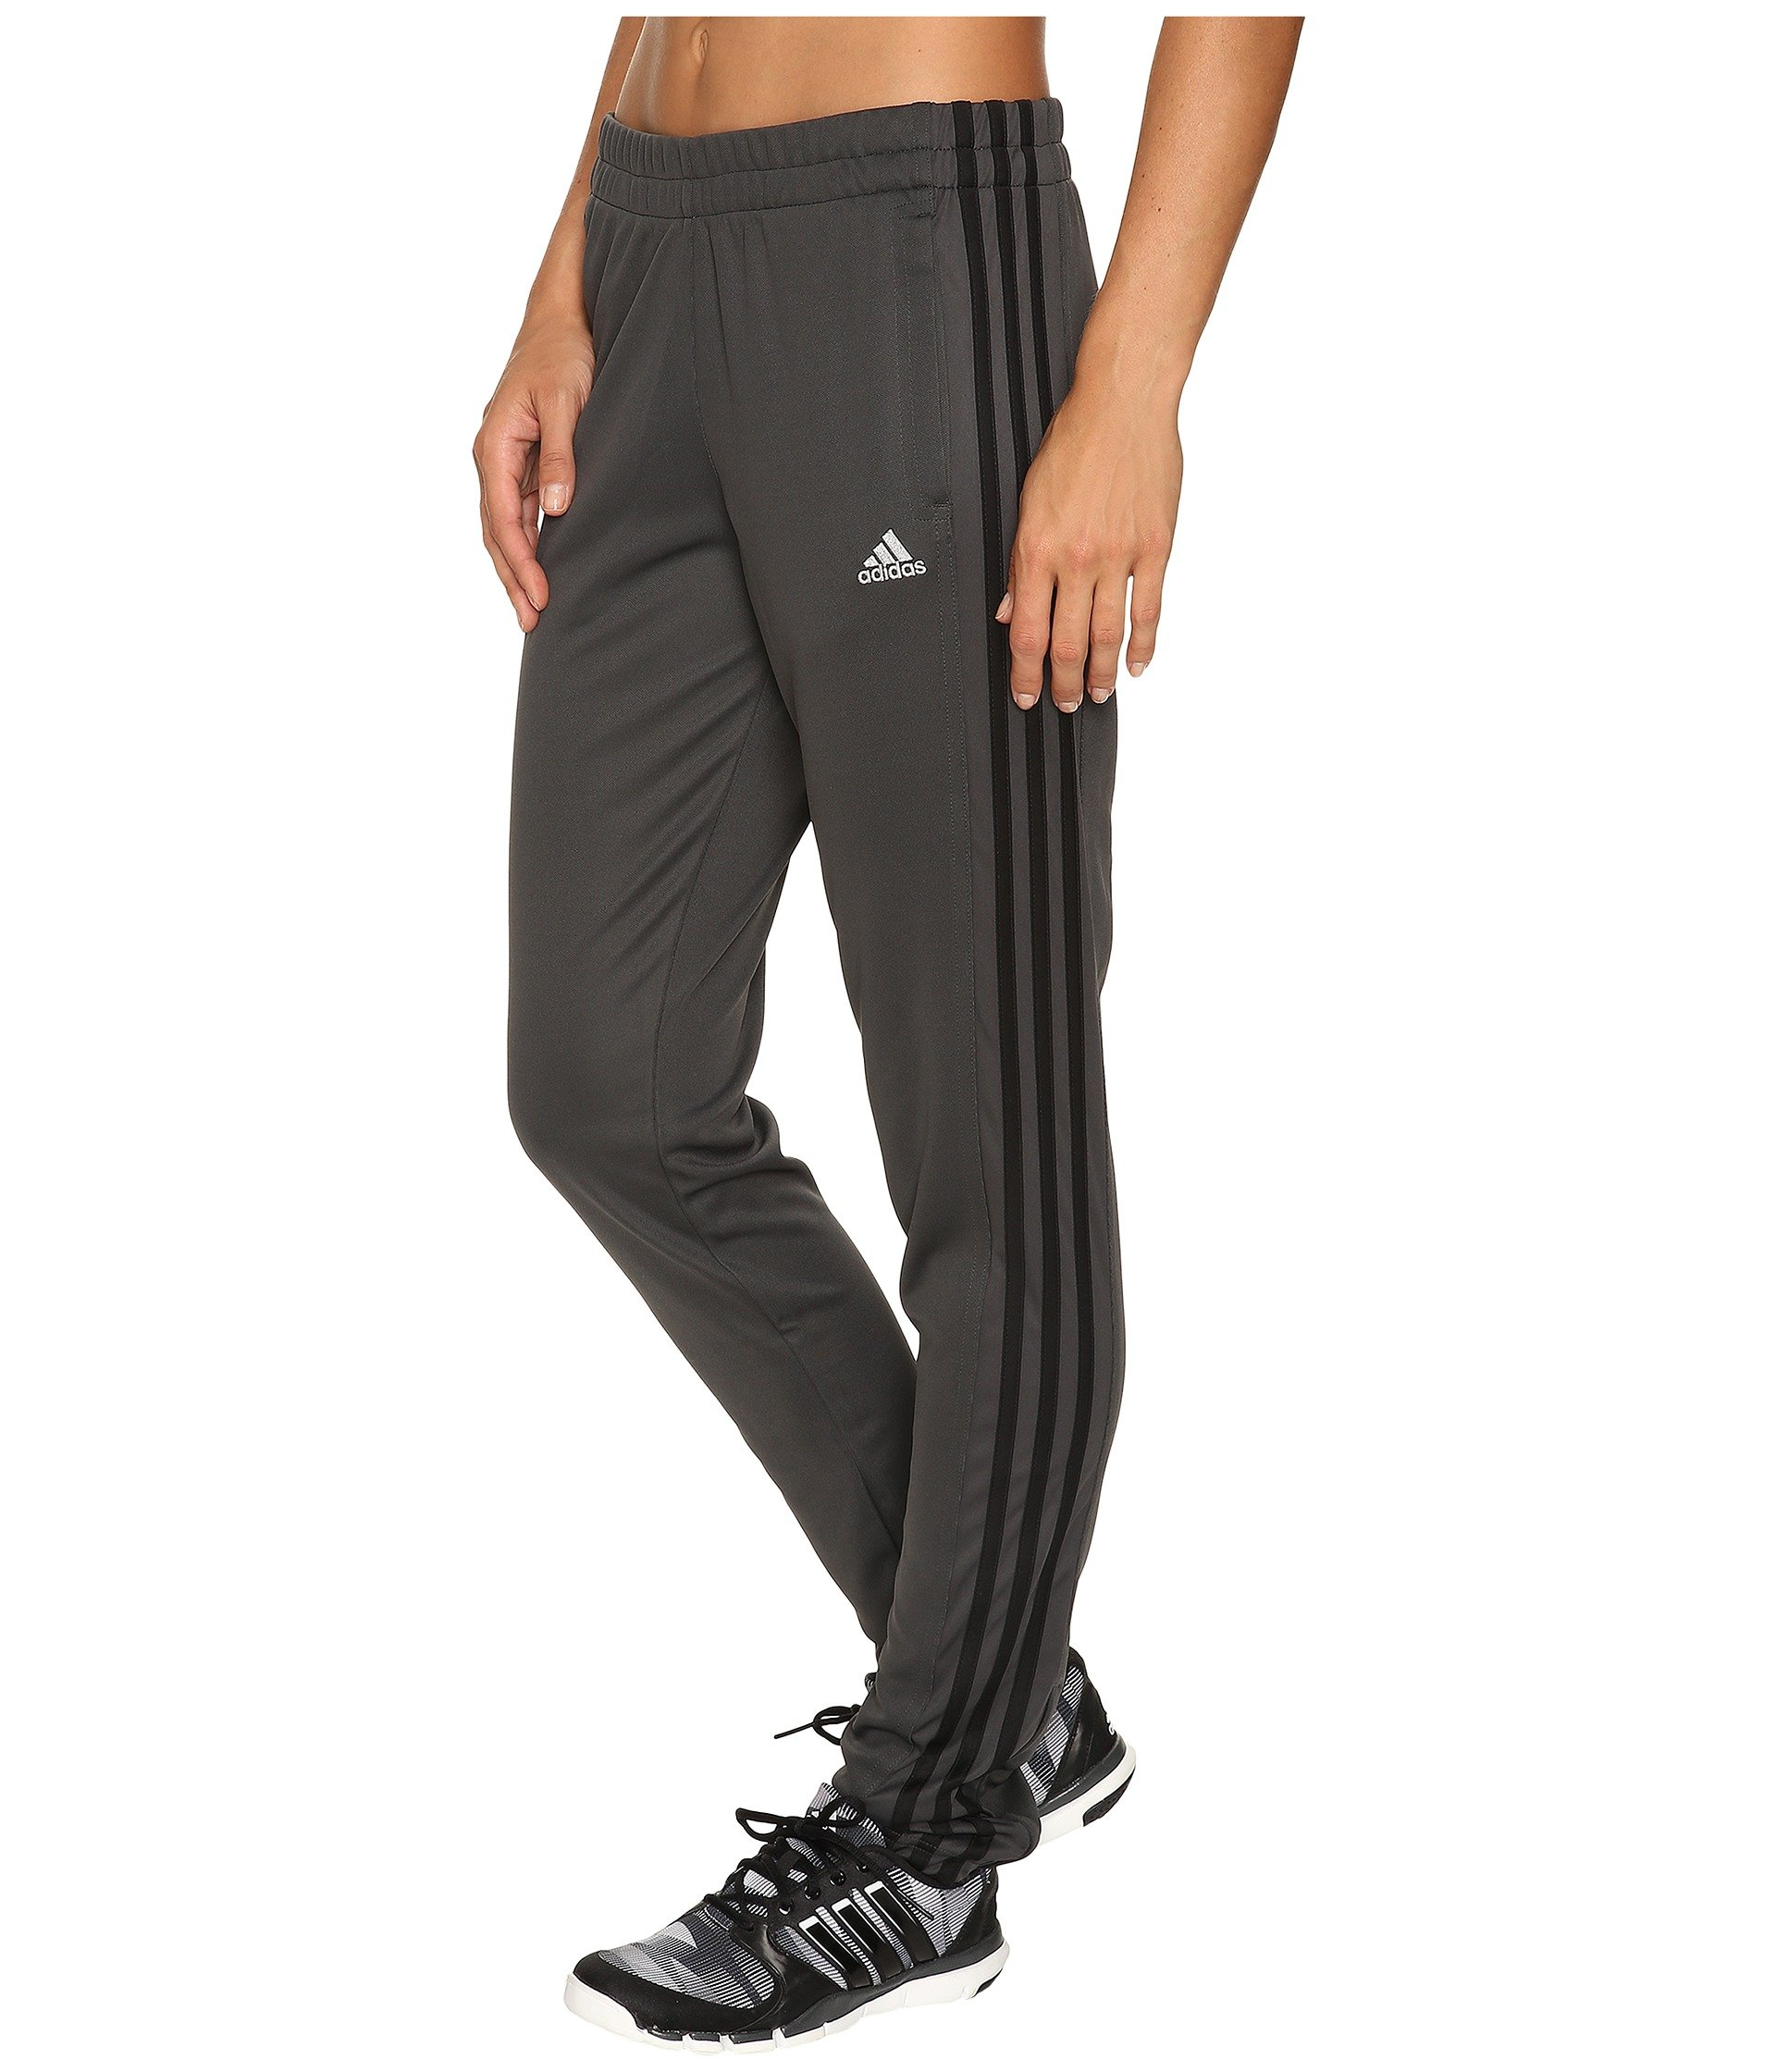 adidas Women's T10 Pants, Dary Grey/Black, X-Small